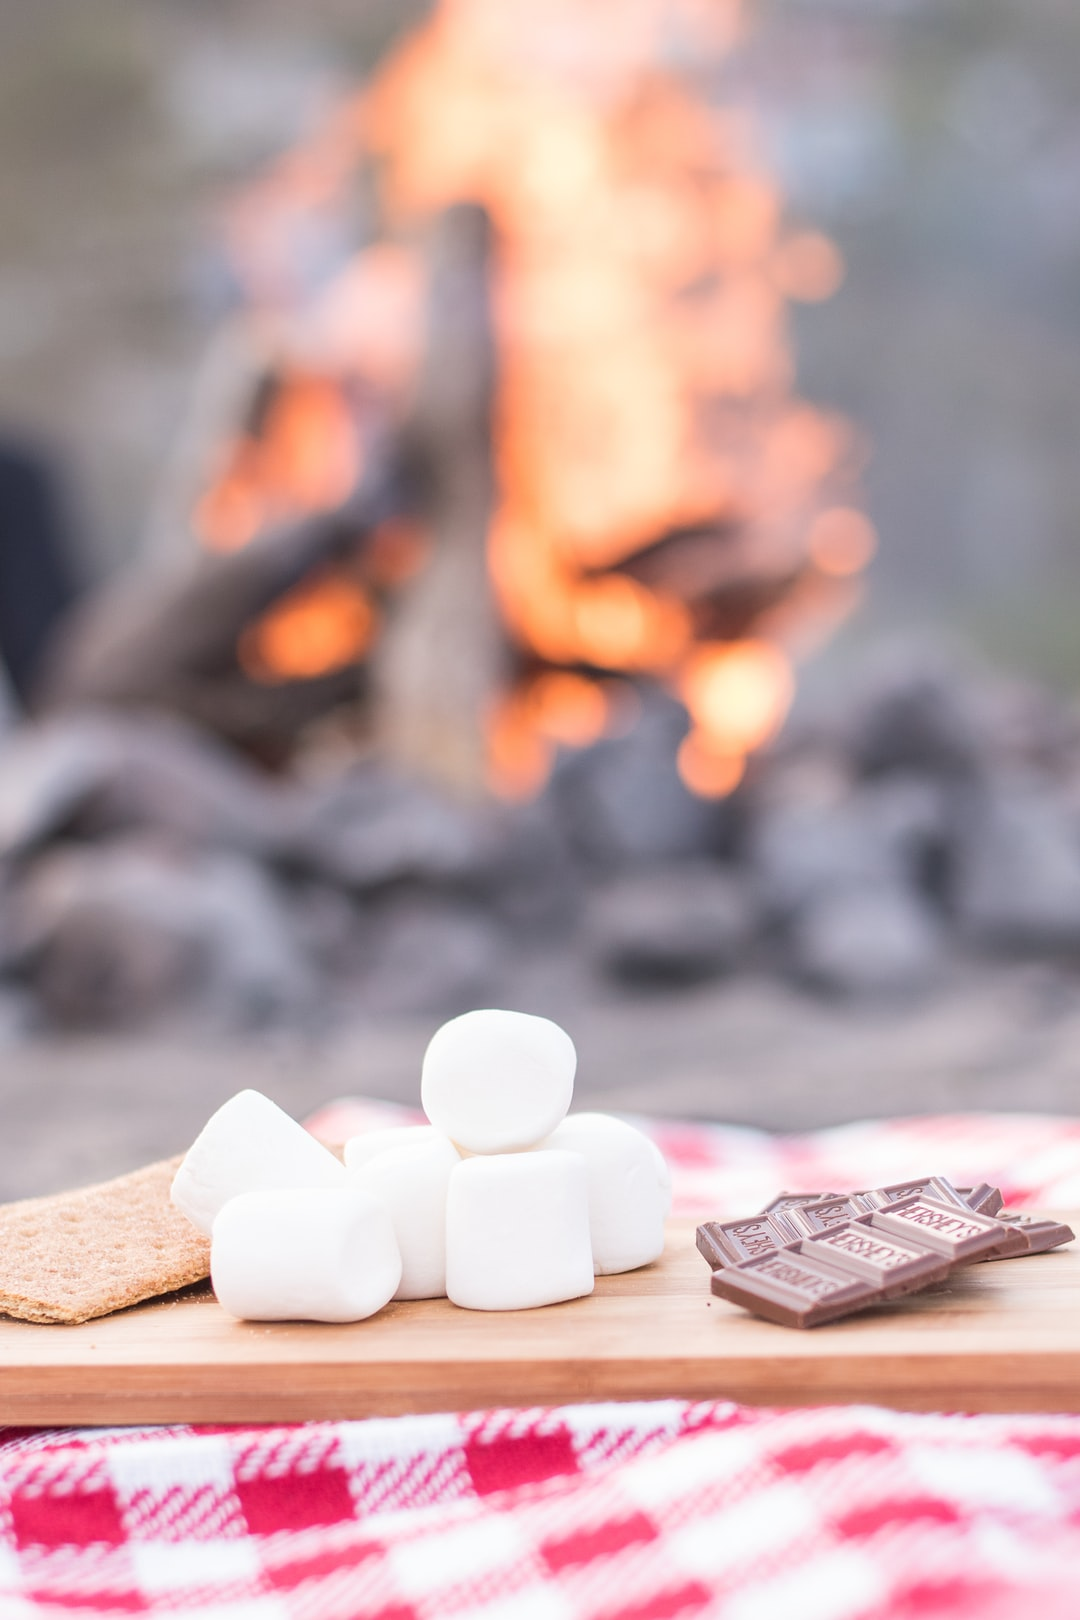 500 Marshmallow Pictures Hd Download Free Images On